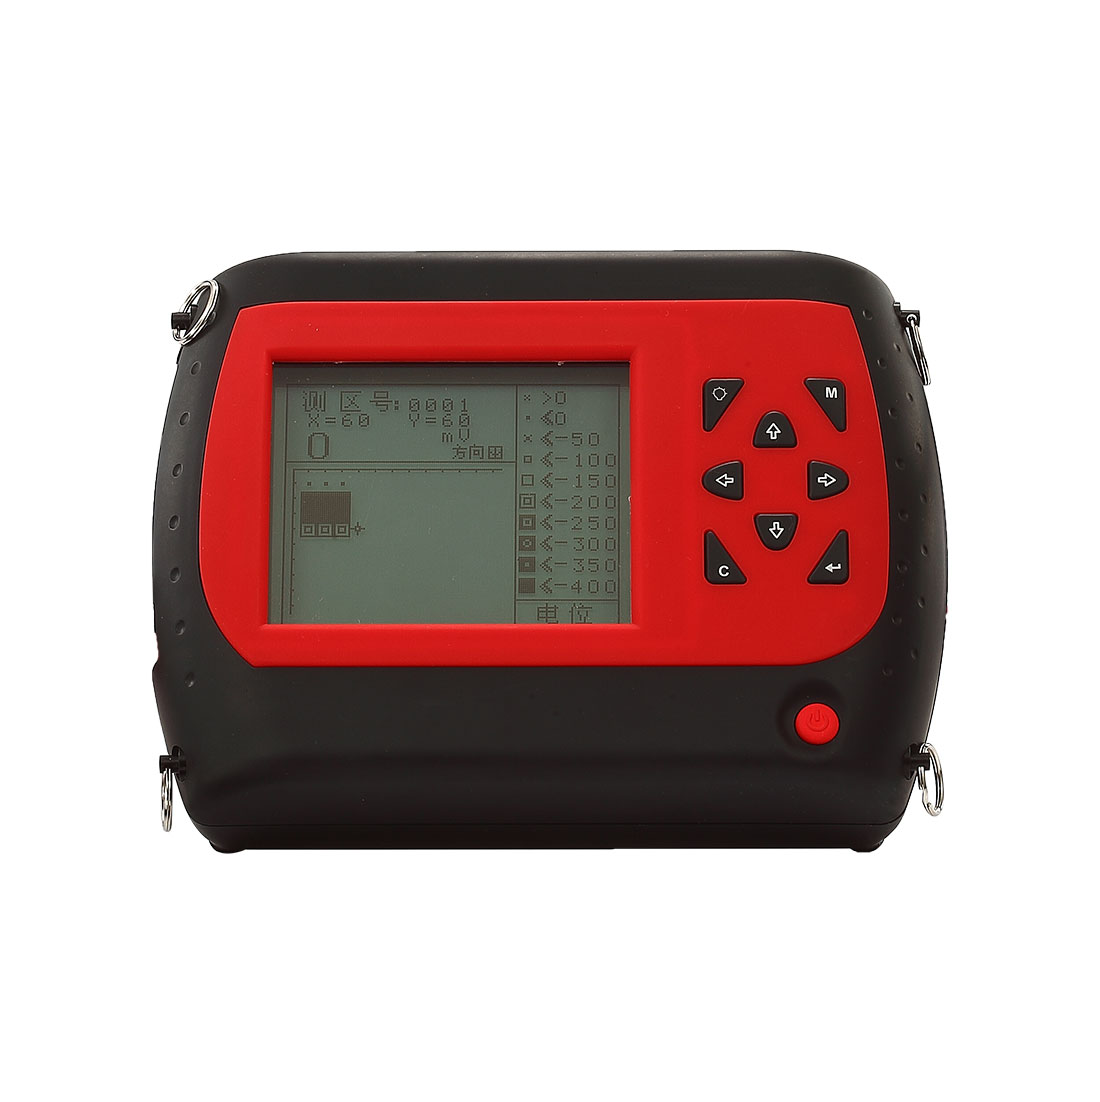 JZT102 reinforcement corrosion meter (color screen display)